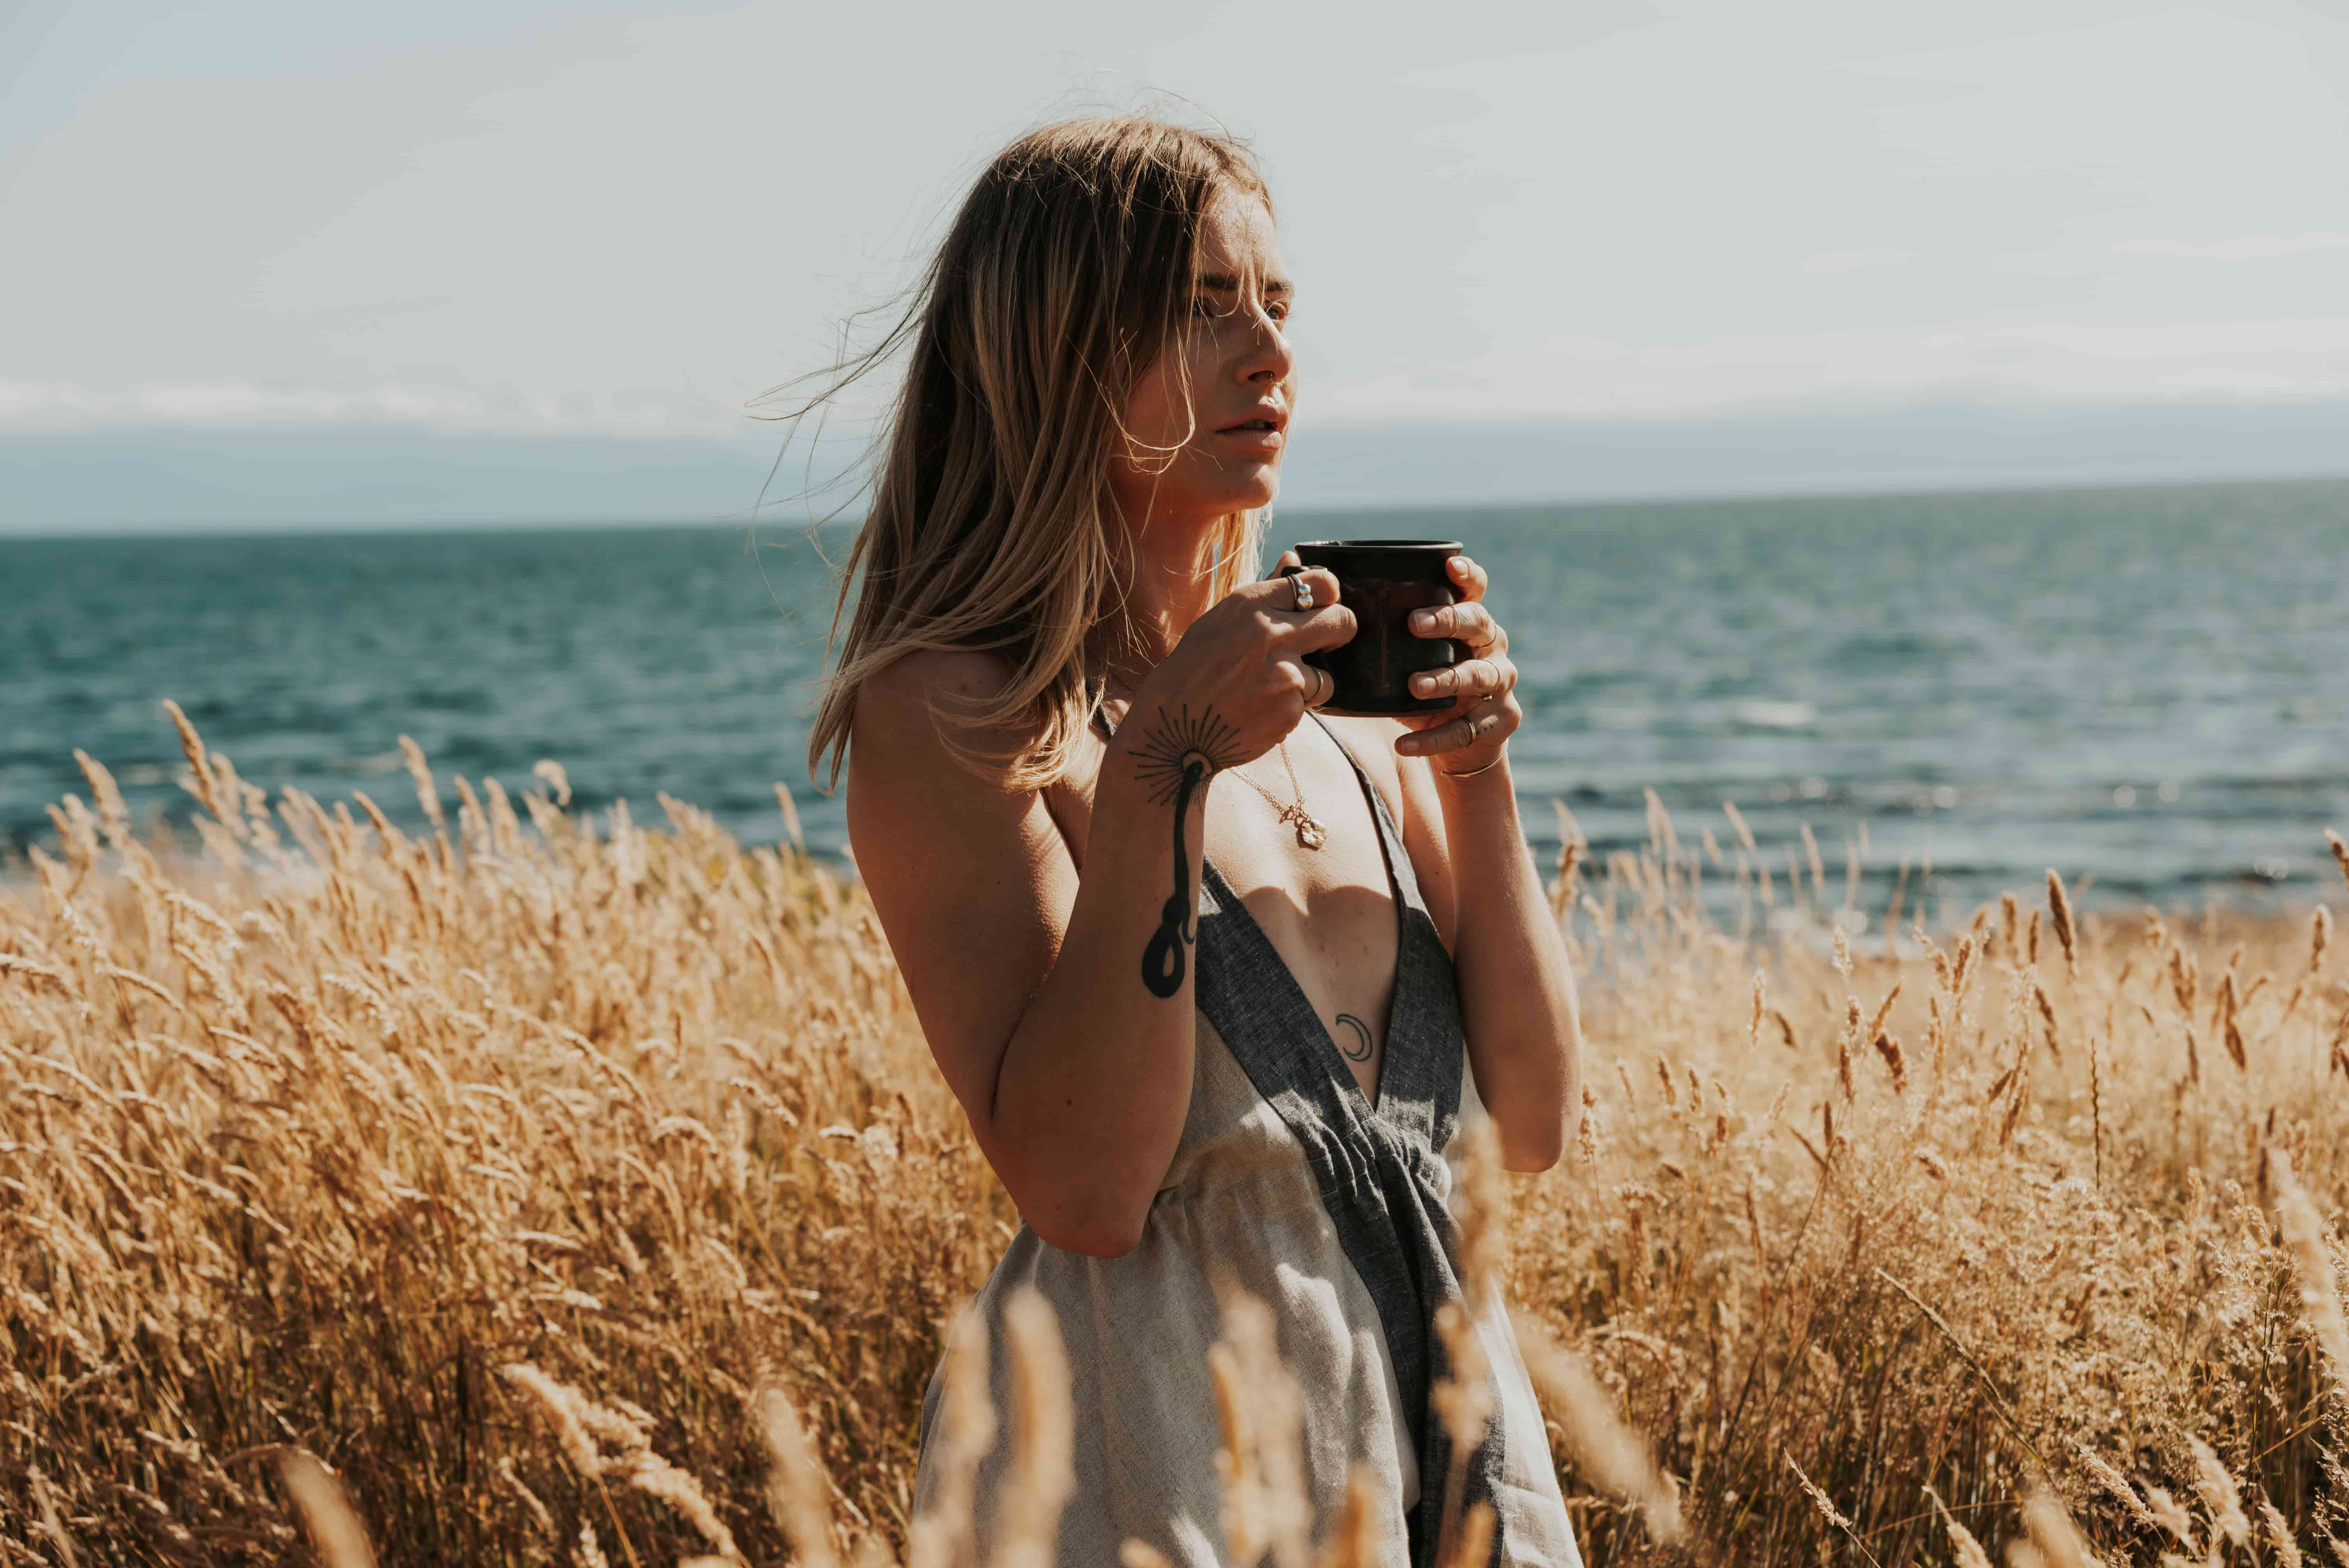 Haley Salomon with a cup of Herbal Honest Tea in a field of gold grass by the ocean in a photo by Hailey Krakana.